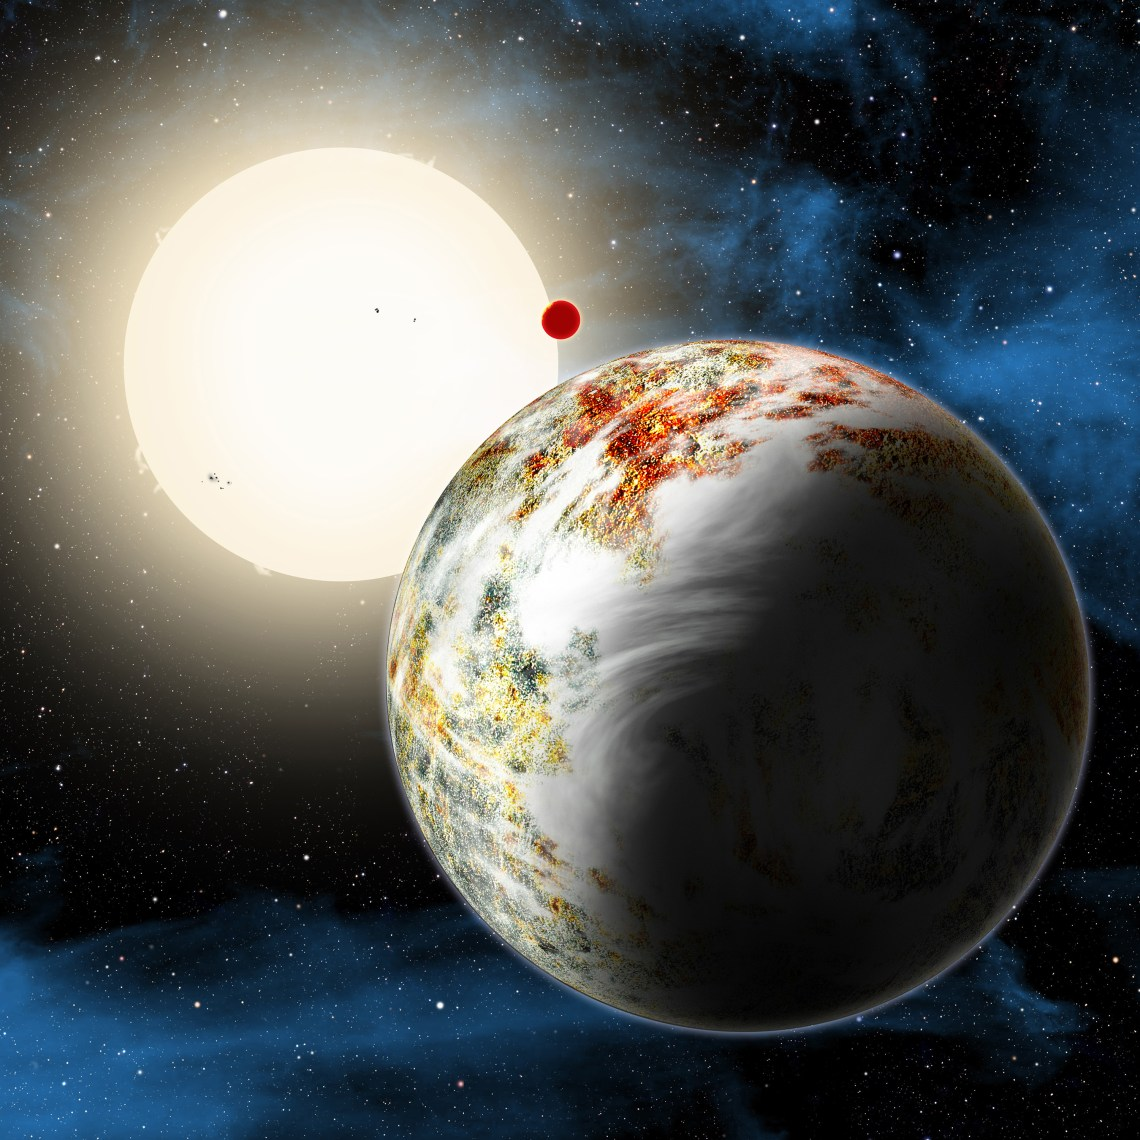 "The newly discovered ""mega-Earth"" Kepler-10c dominates the foreground in this artist's conception. Its sibling, the lava world Kepler-10b, is in the background. Both orbit a sunlike star. Kepler-10c has a diameter of about 18,000 miles, 2.3 times as large as Earth, and weighs 17 times as much. Therefore it is all solids, although it may possess a thin atmosphere shown here as wispy clouds. Credit: David A. Aguilar/Harvard-Smithsonian Center for Astrophysics (CfA)"